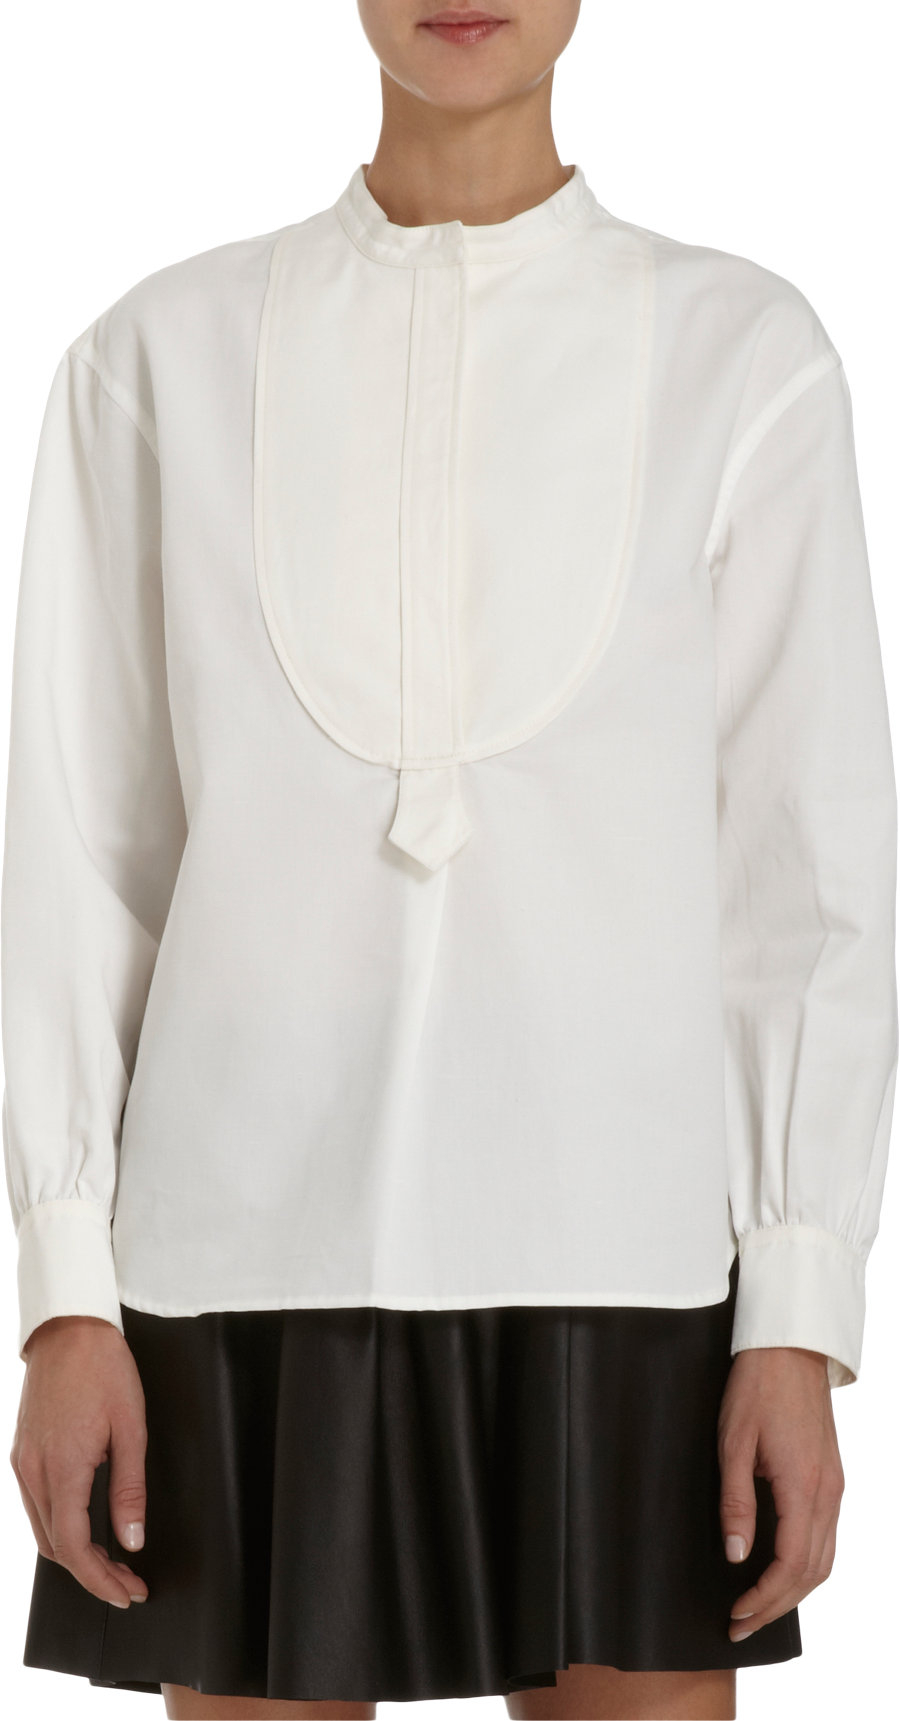 Womens Cordage Cotton Poplin Blouse Atlantique Ascoli Free Shipping With Credit Card Visa Payment For Sale YphMWlfJD